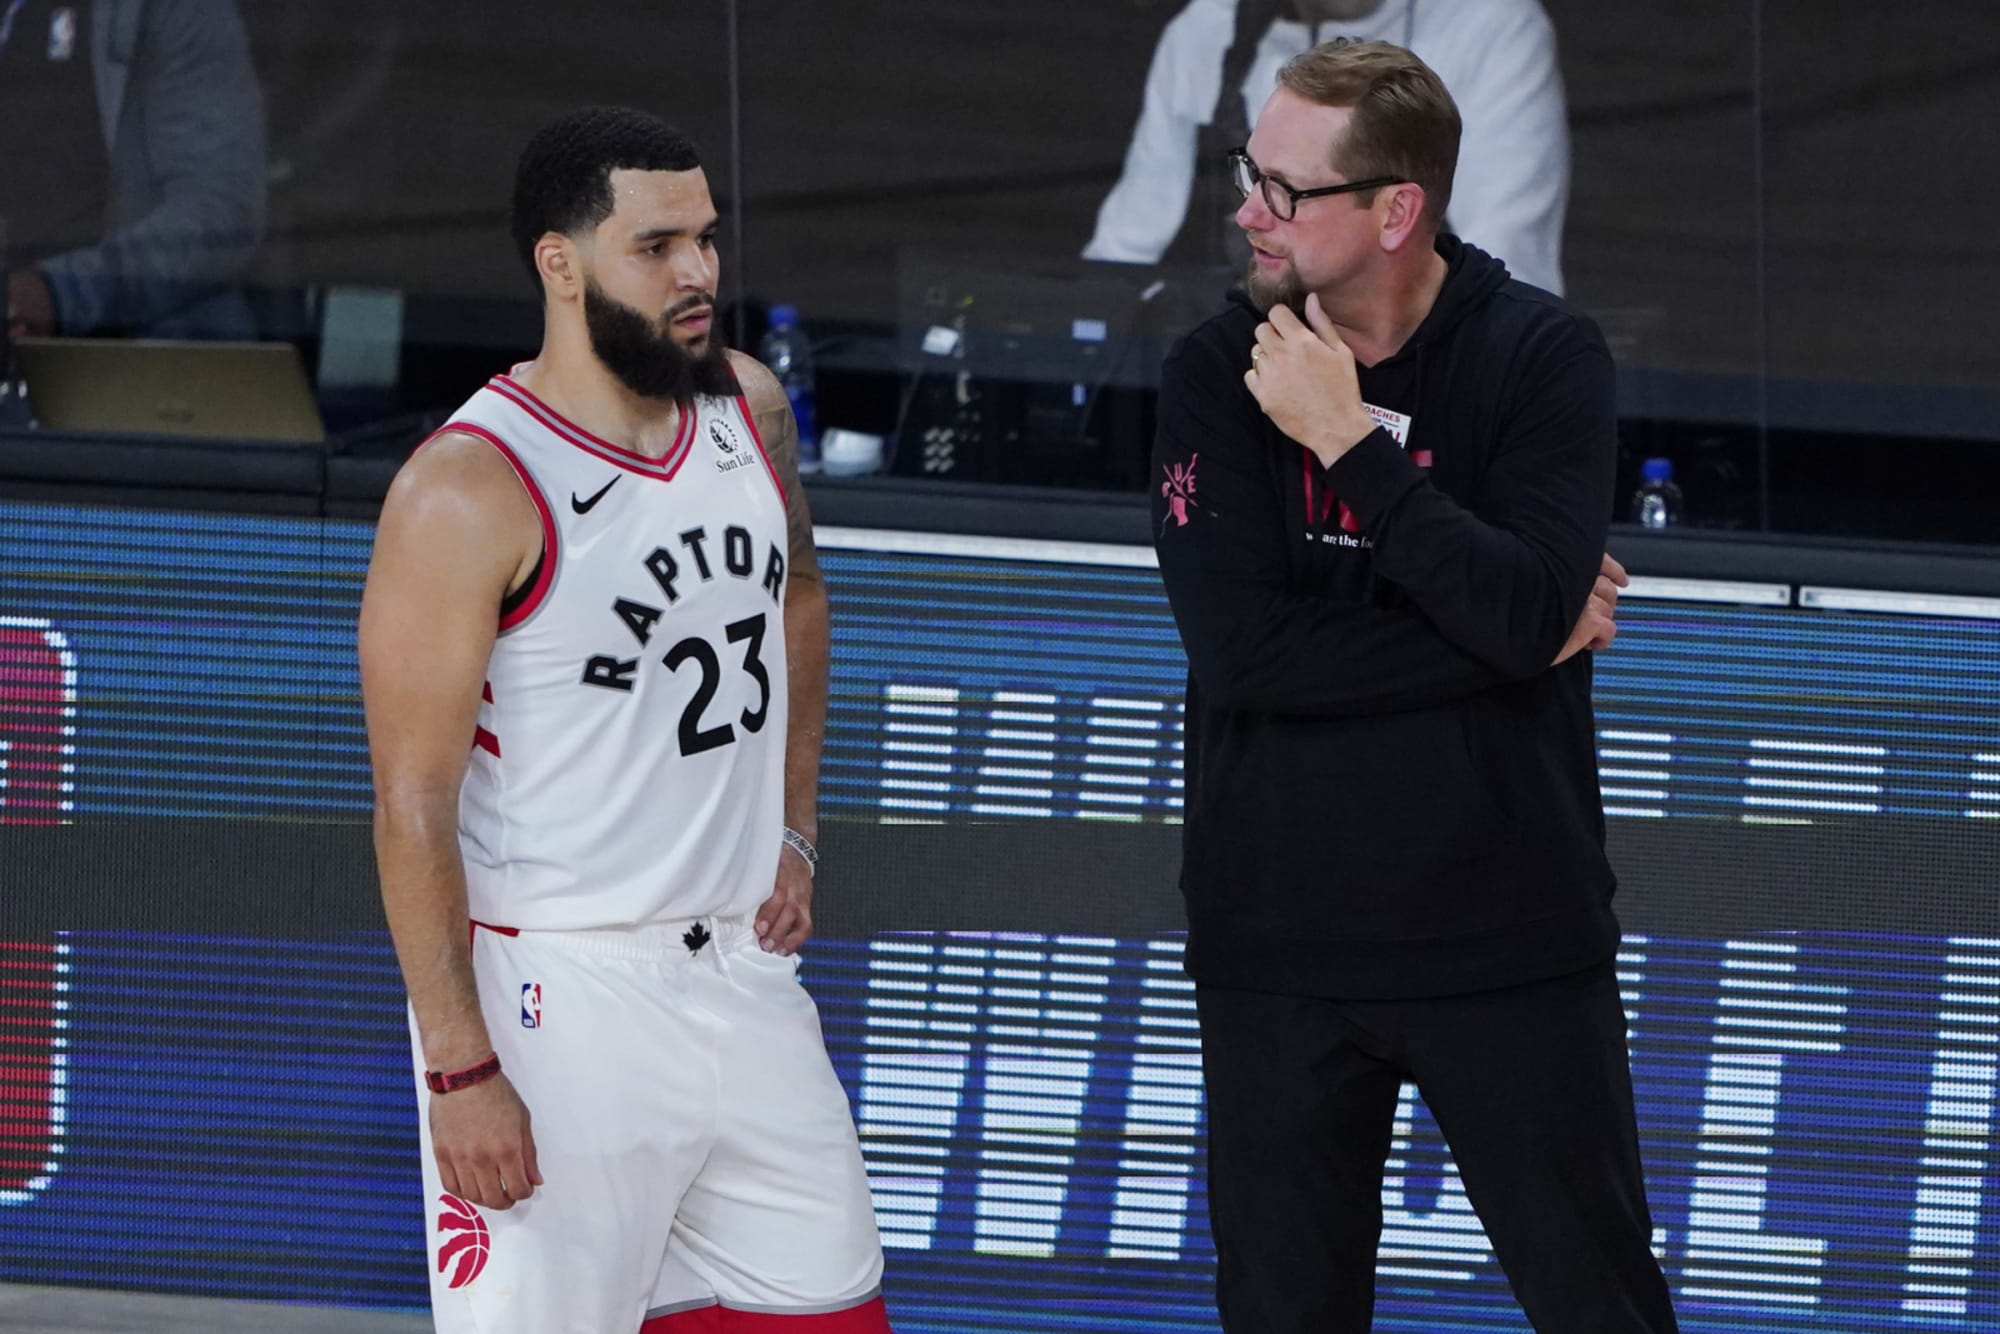 The media continues to disrespect the Toronto Raptors